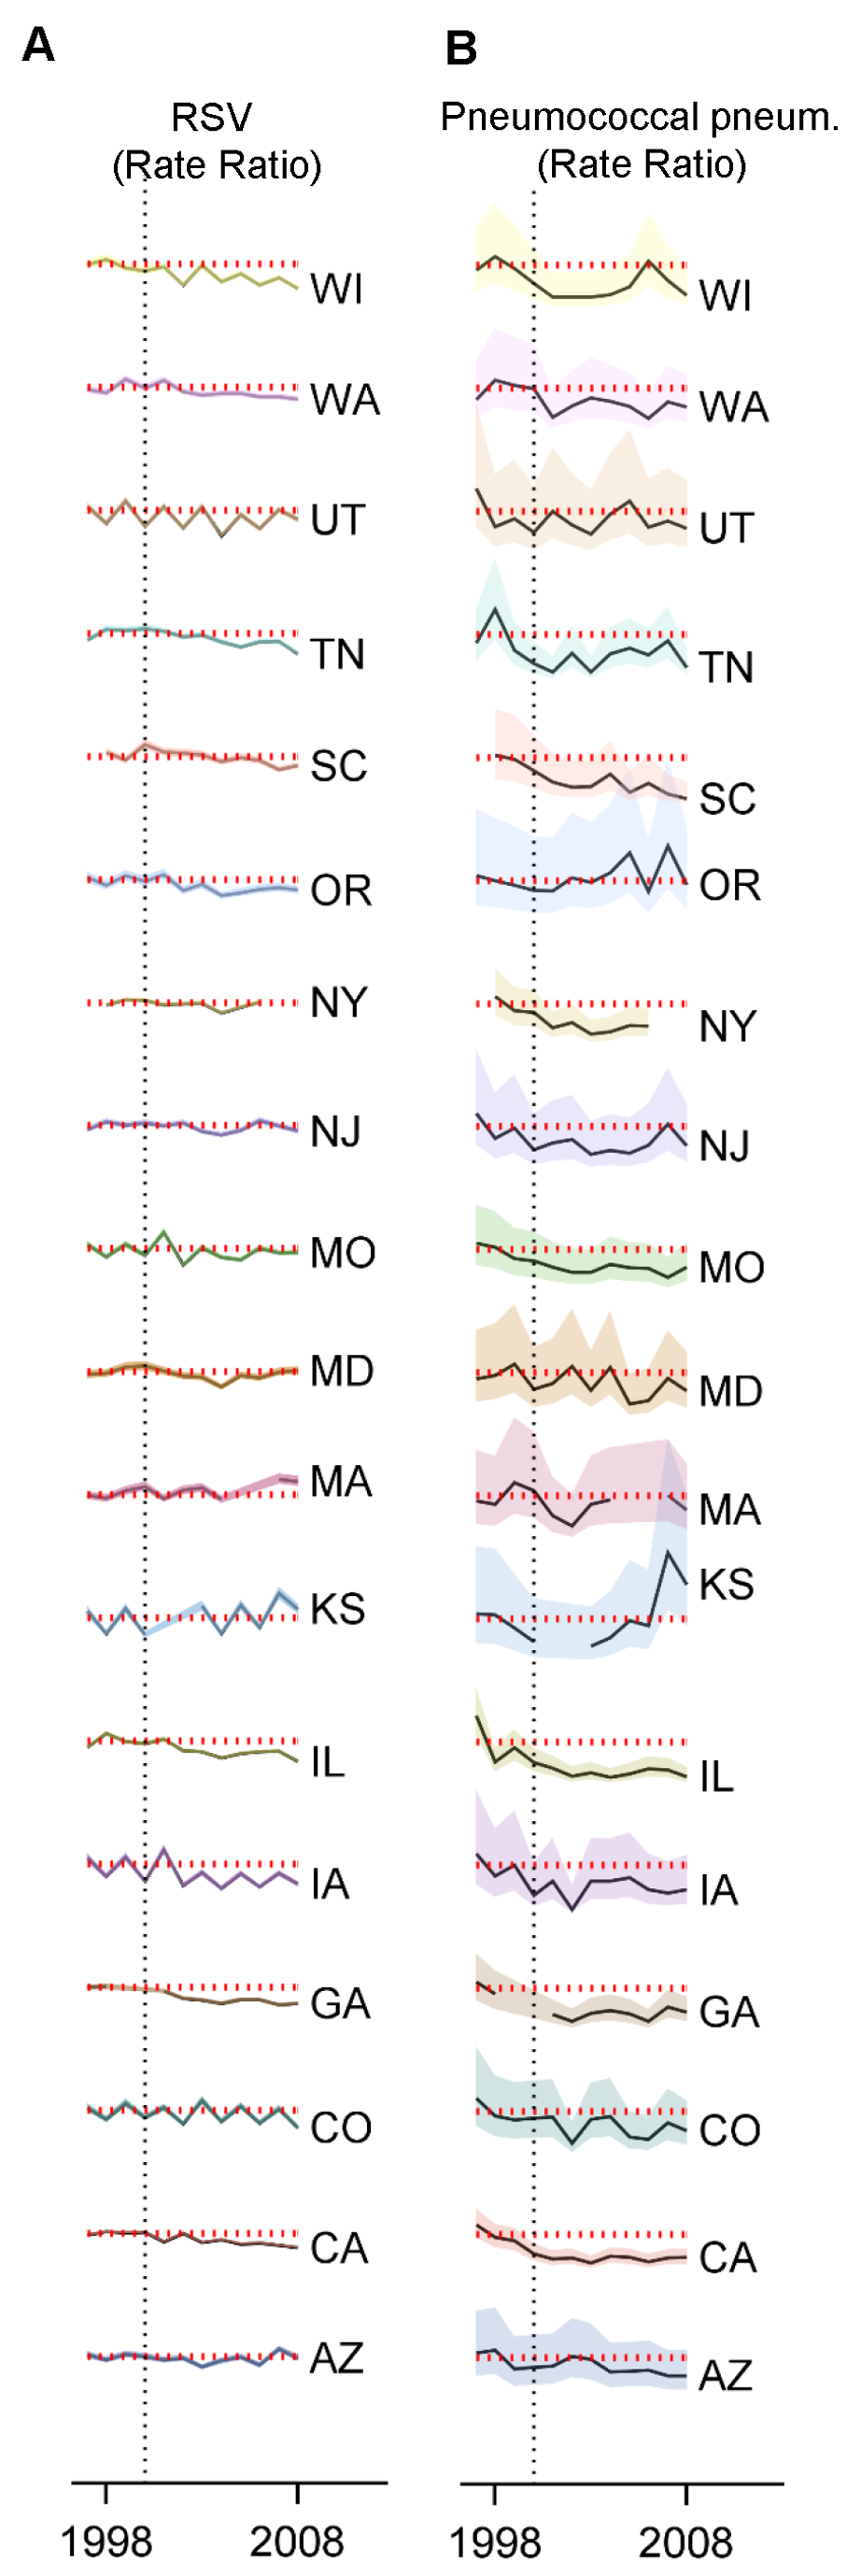 Variations between states, age groups, and years in the change in rates of hospitalization for RSV or pneumococcal pneumonia after introduction of PCV7.